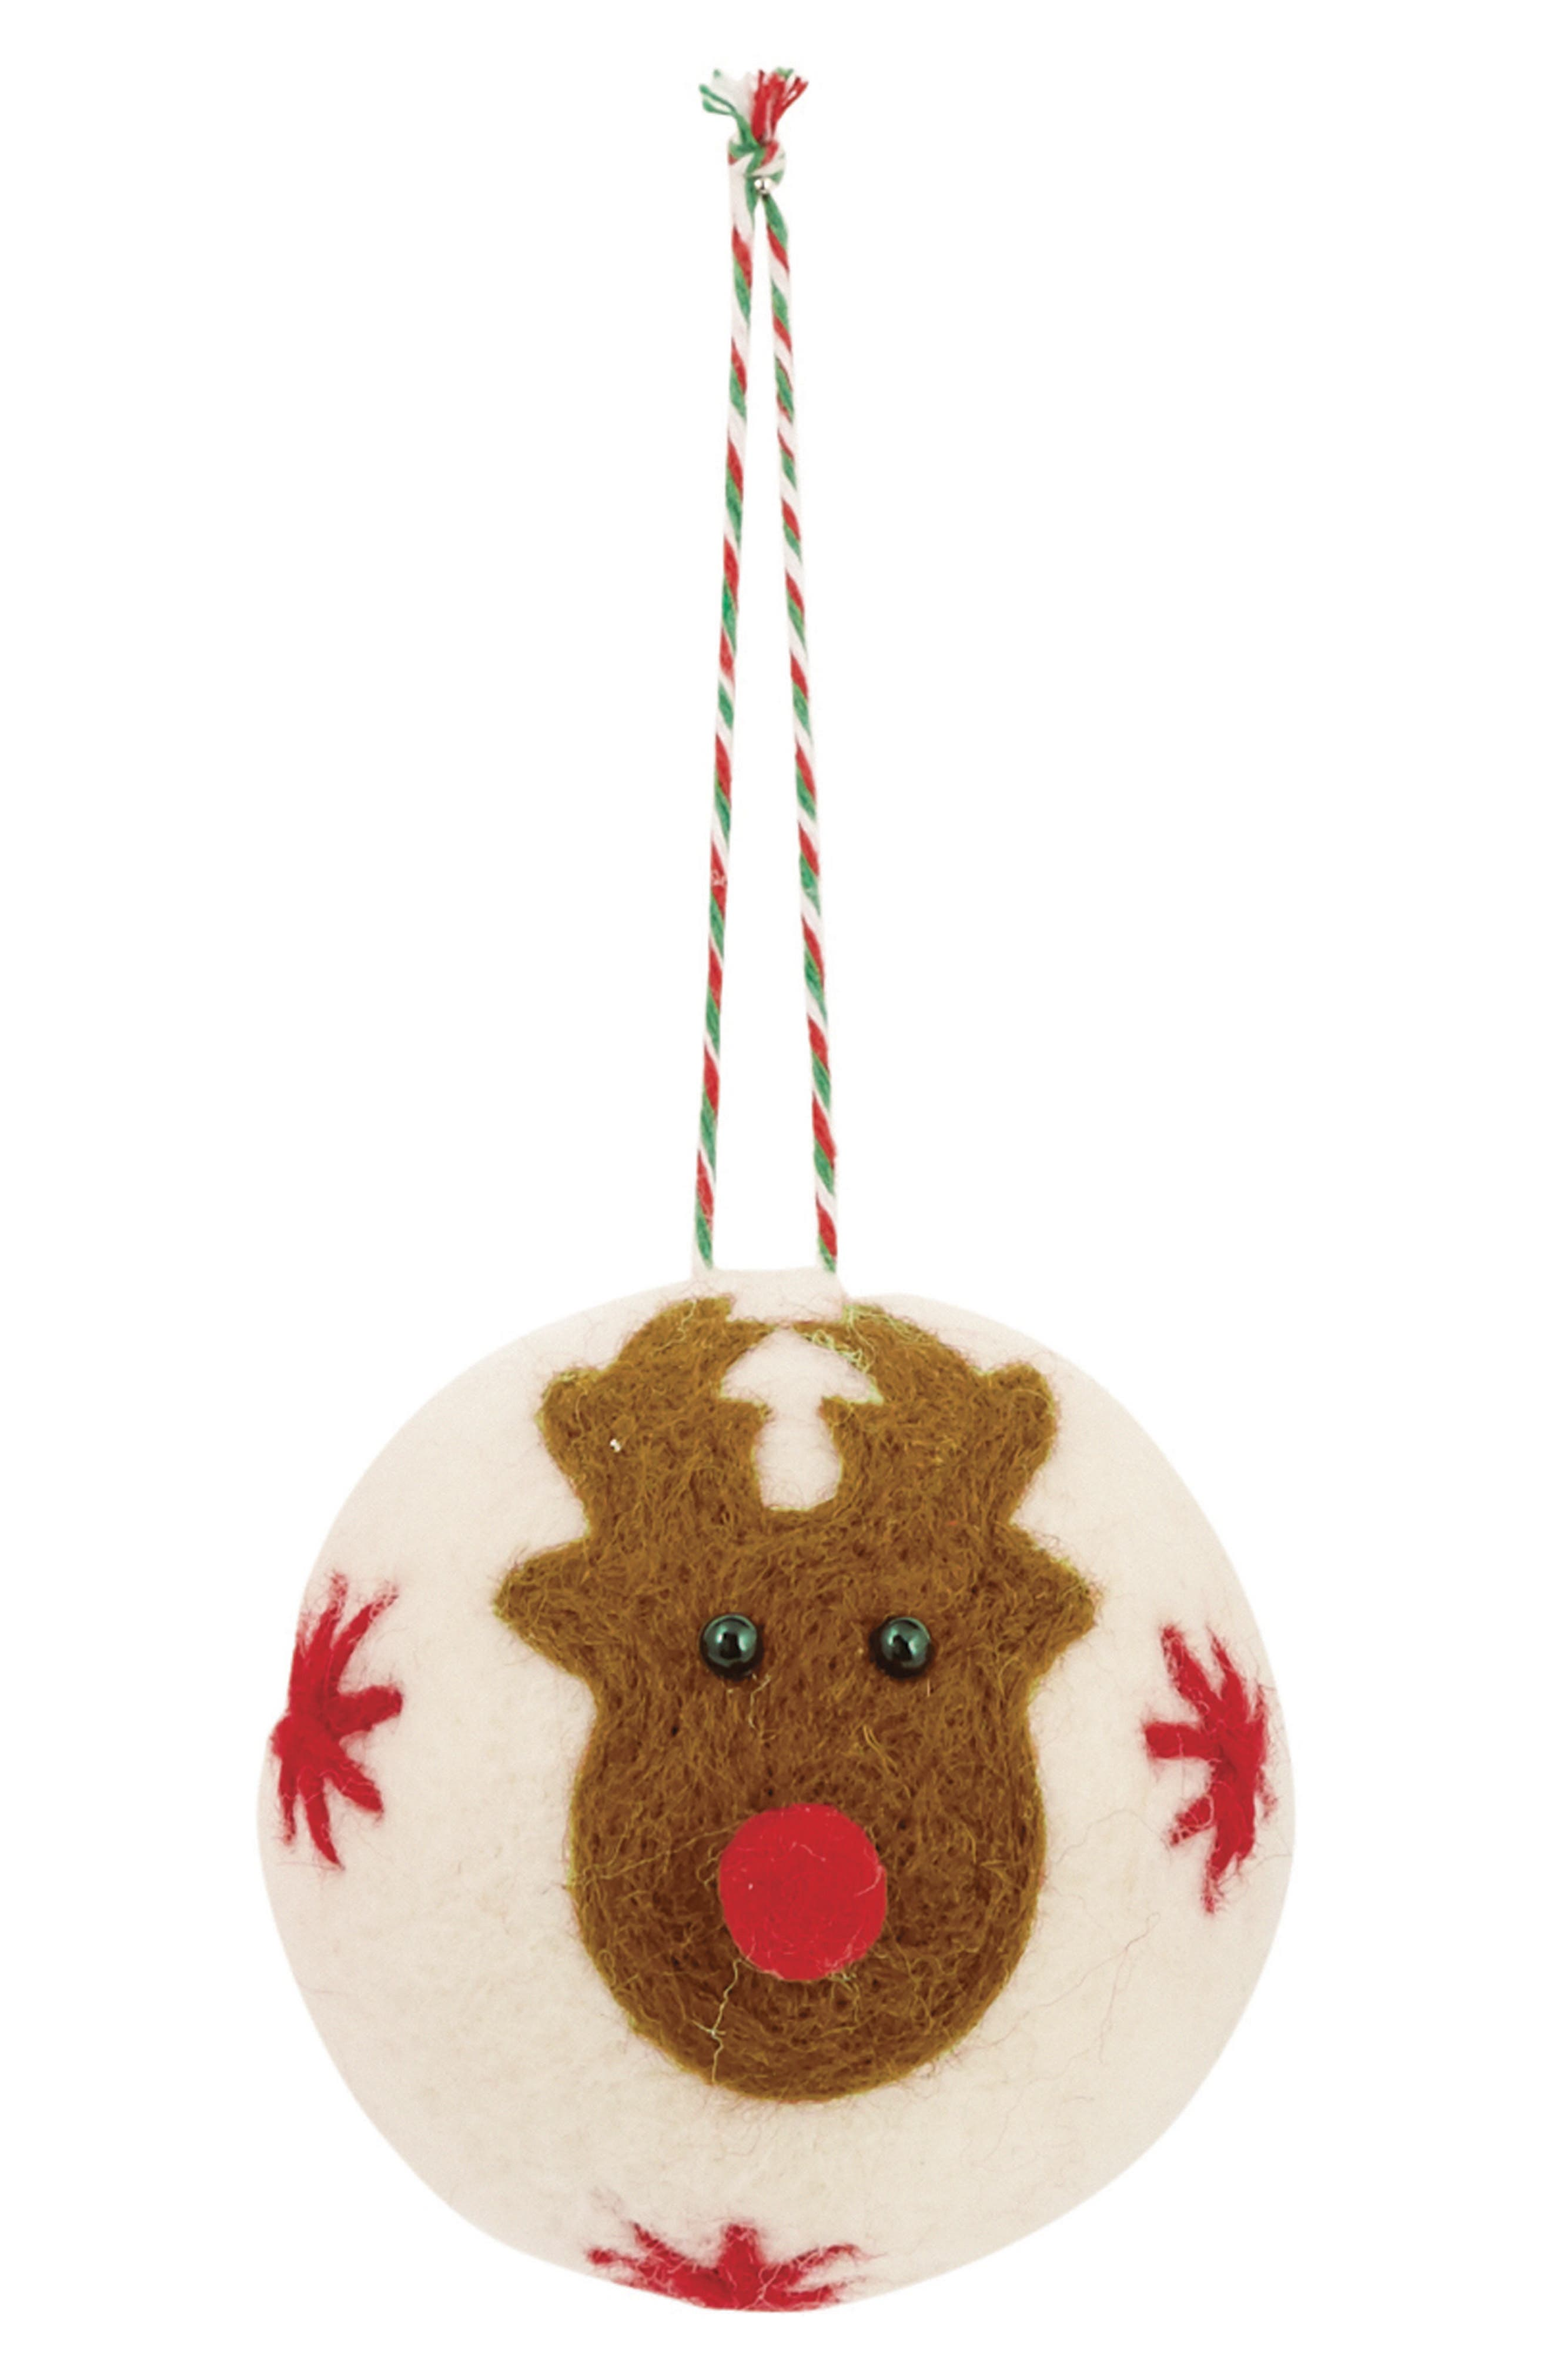 Boiled Wool Reindeer Ornament,                             Main thumbnail 1, color,                             100